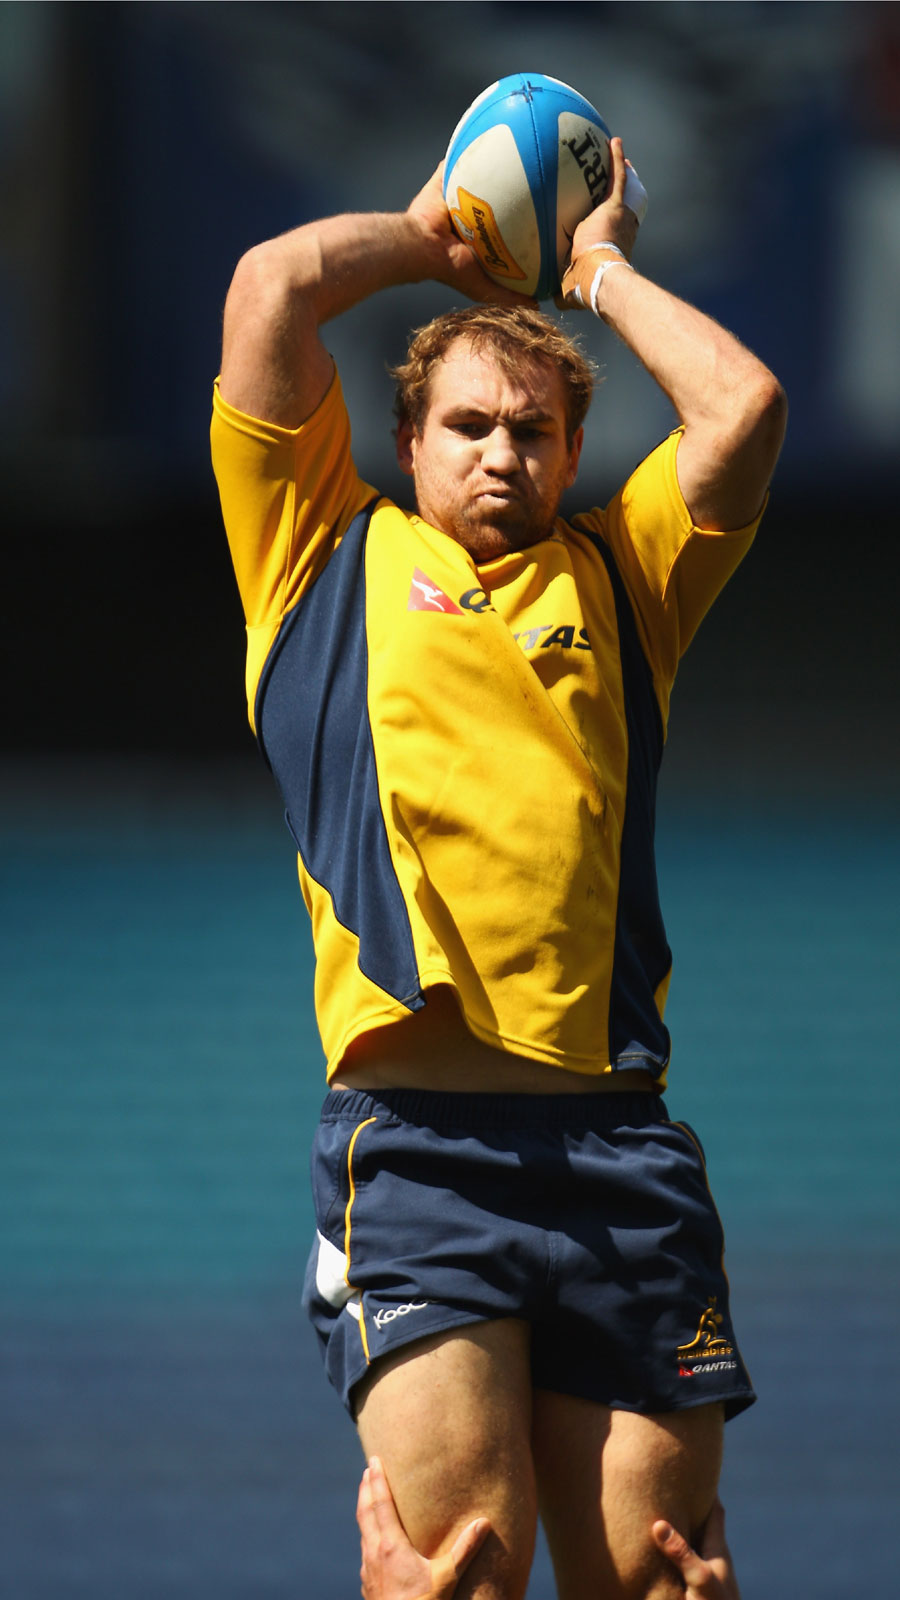 Wallabies captain Rocky Elsom is launched into the air to claim the ball